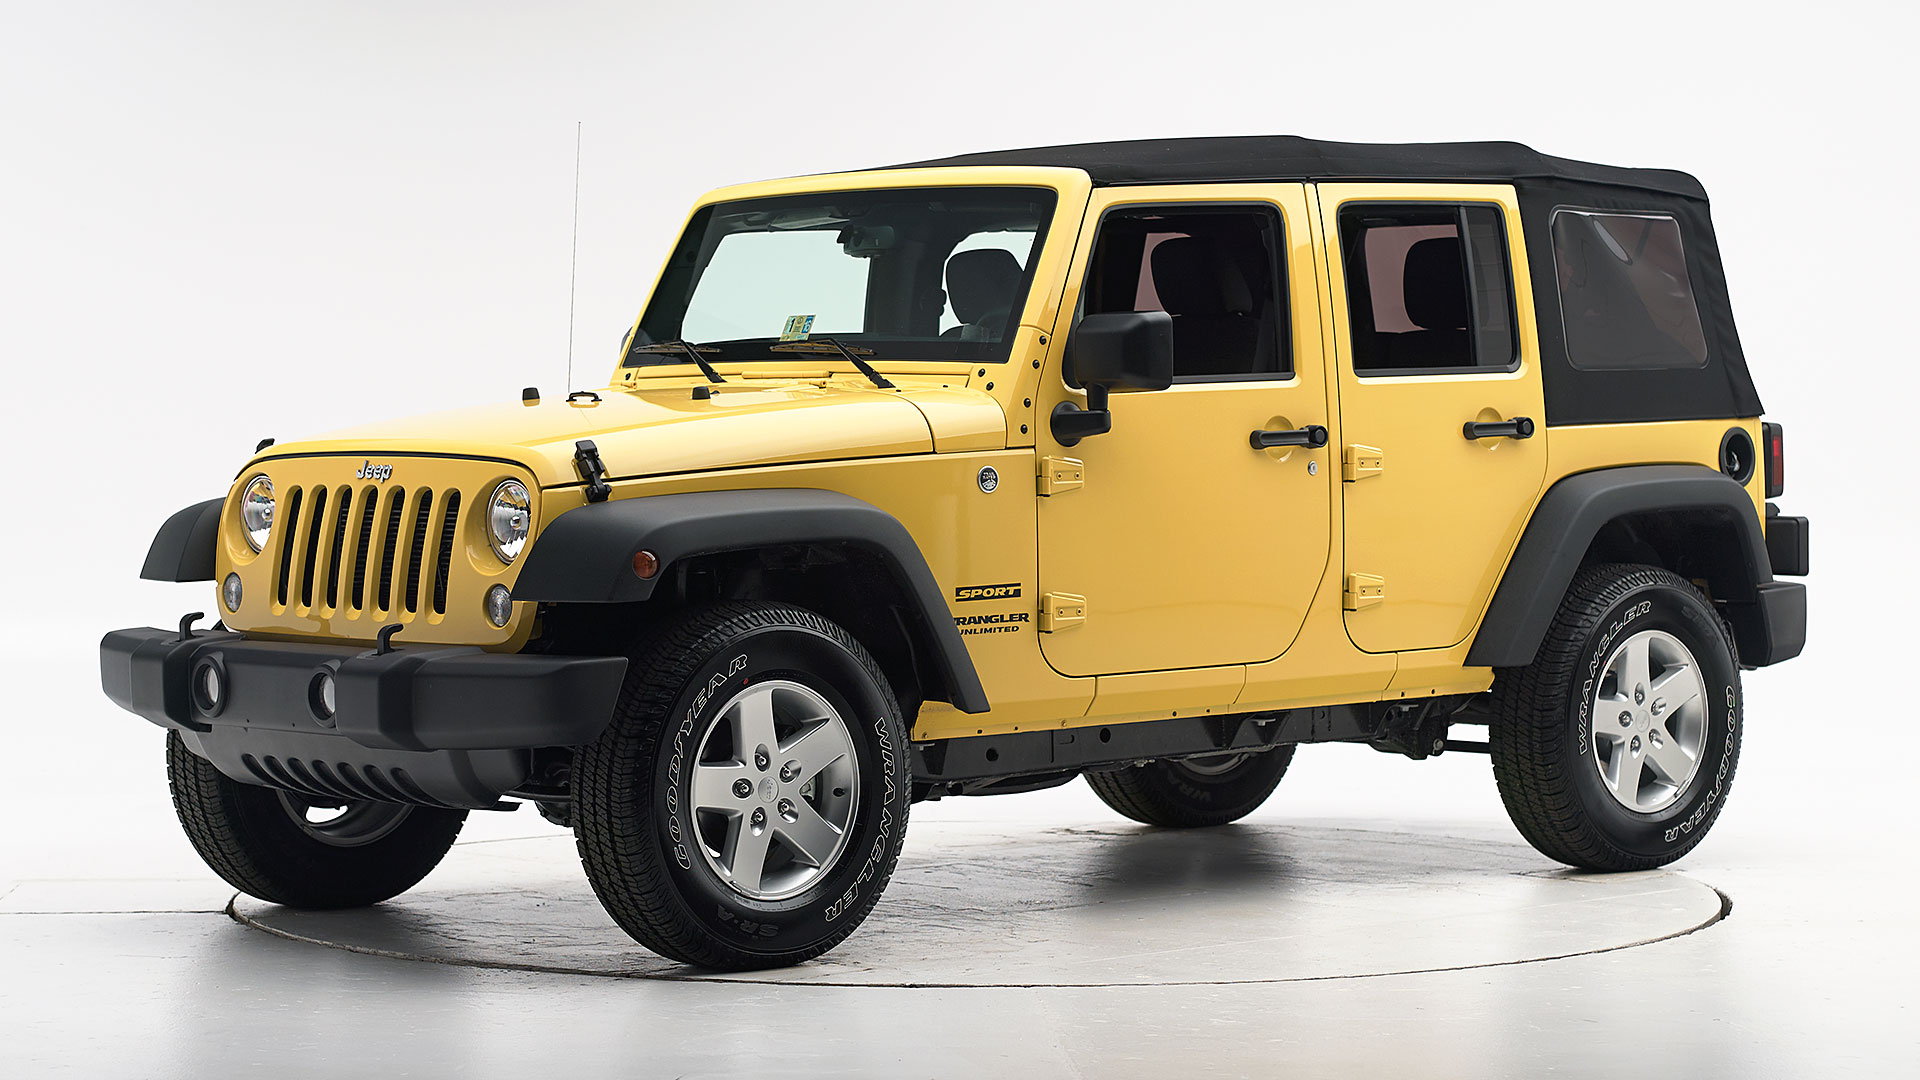 2017 Jeep Wrangler 4-door SUV